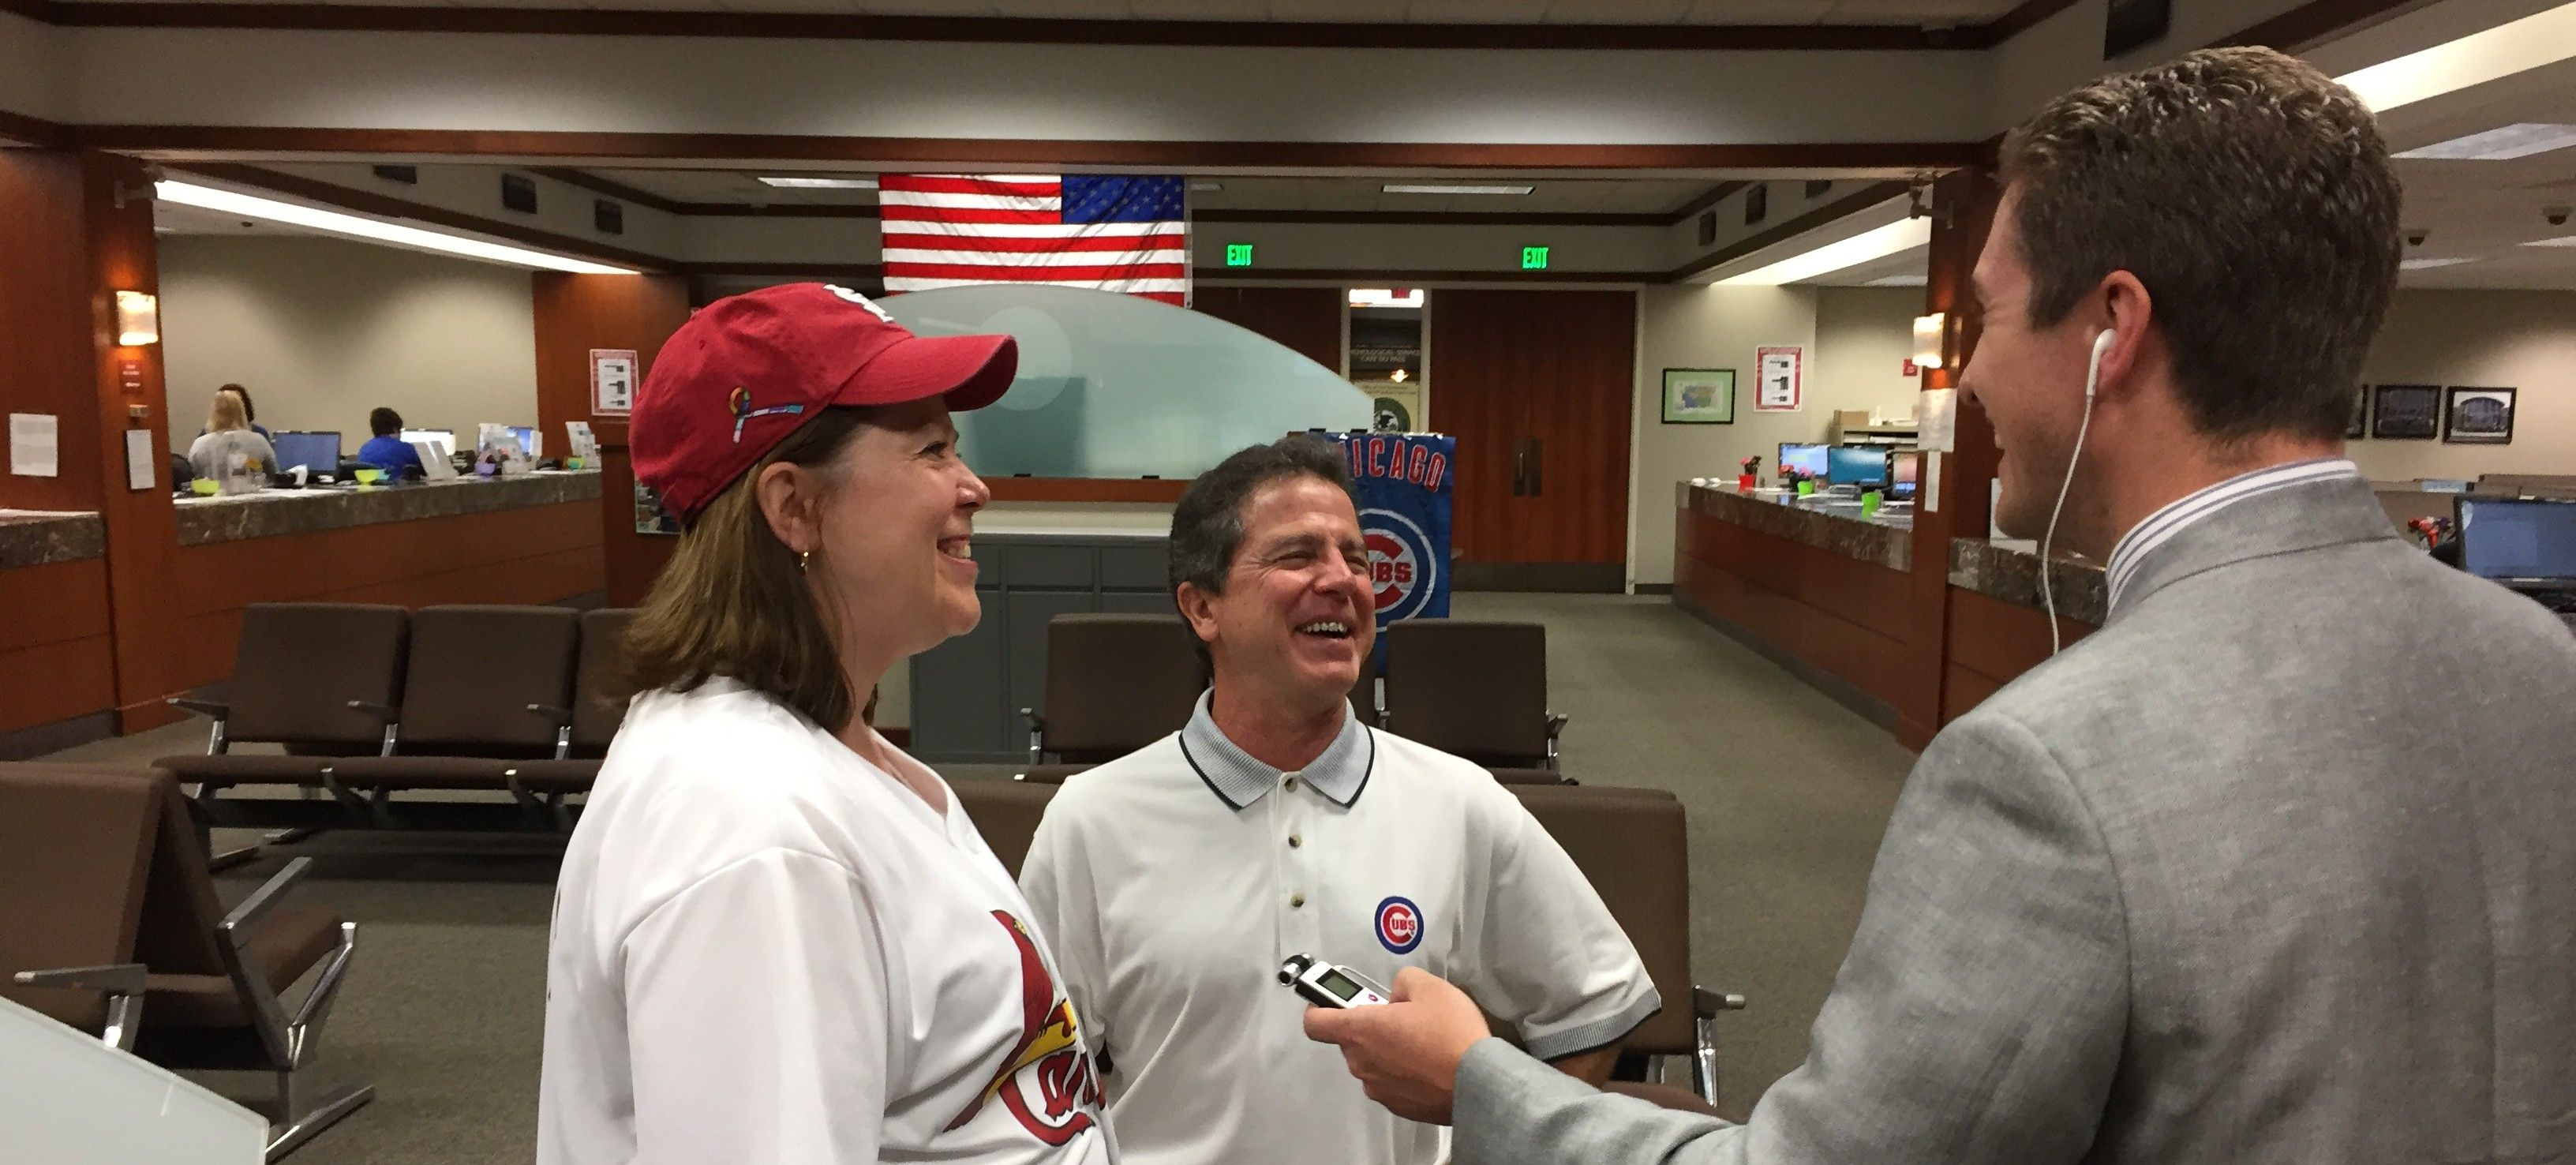 County circuit clerks' Cubs-Cardinals bet causes good-natured DuPage, Moultrie commotion - http://ilnews.org/10221/county-circuit-clerks-cubs-cardinals-bet-causes-good-natured-dupage-moultrie-commotion/